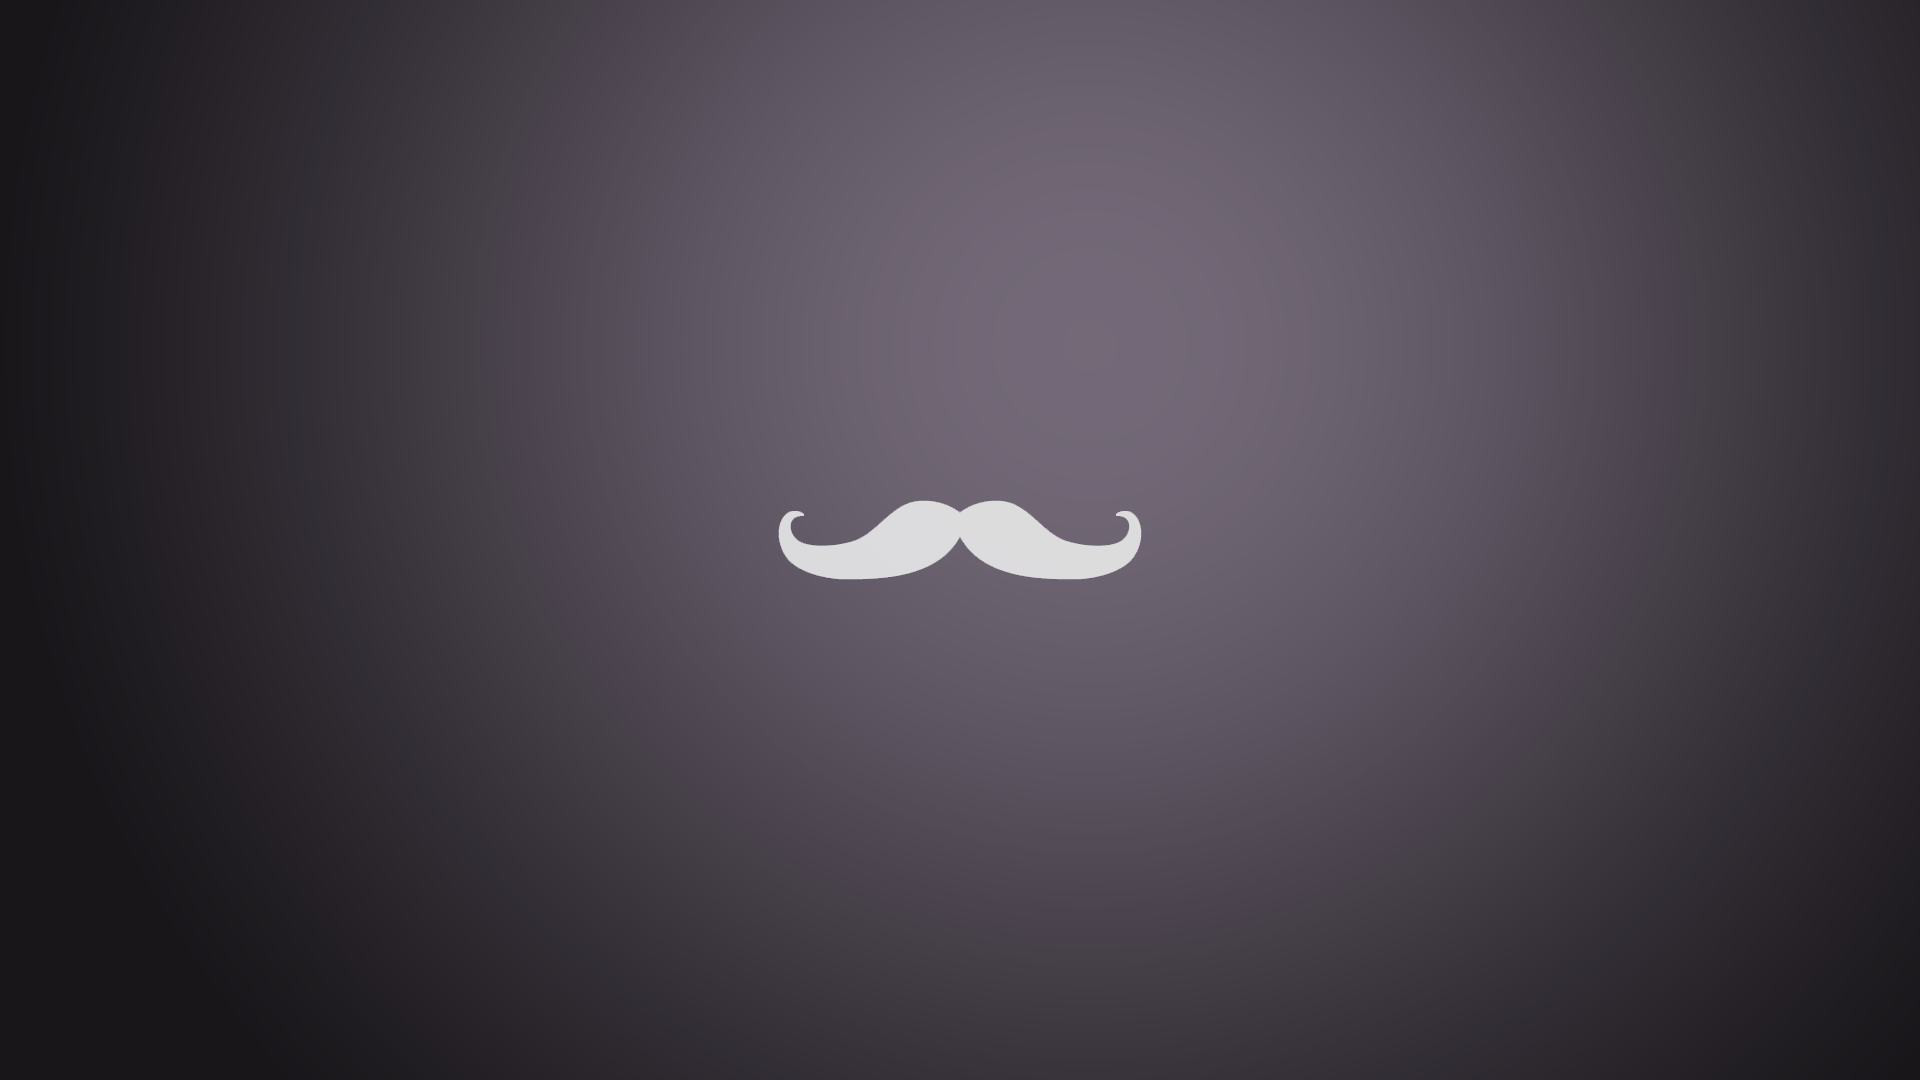 Cute Moustache Wallpapers Weekly Wallpaper Put Moustaches On Your Desktop In Honour